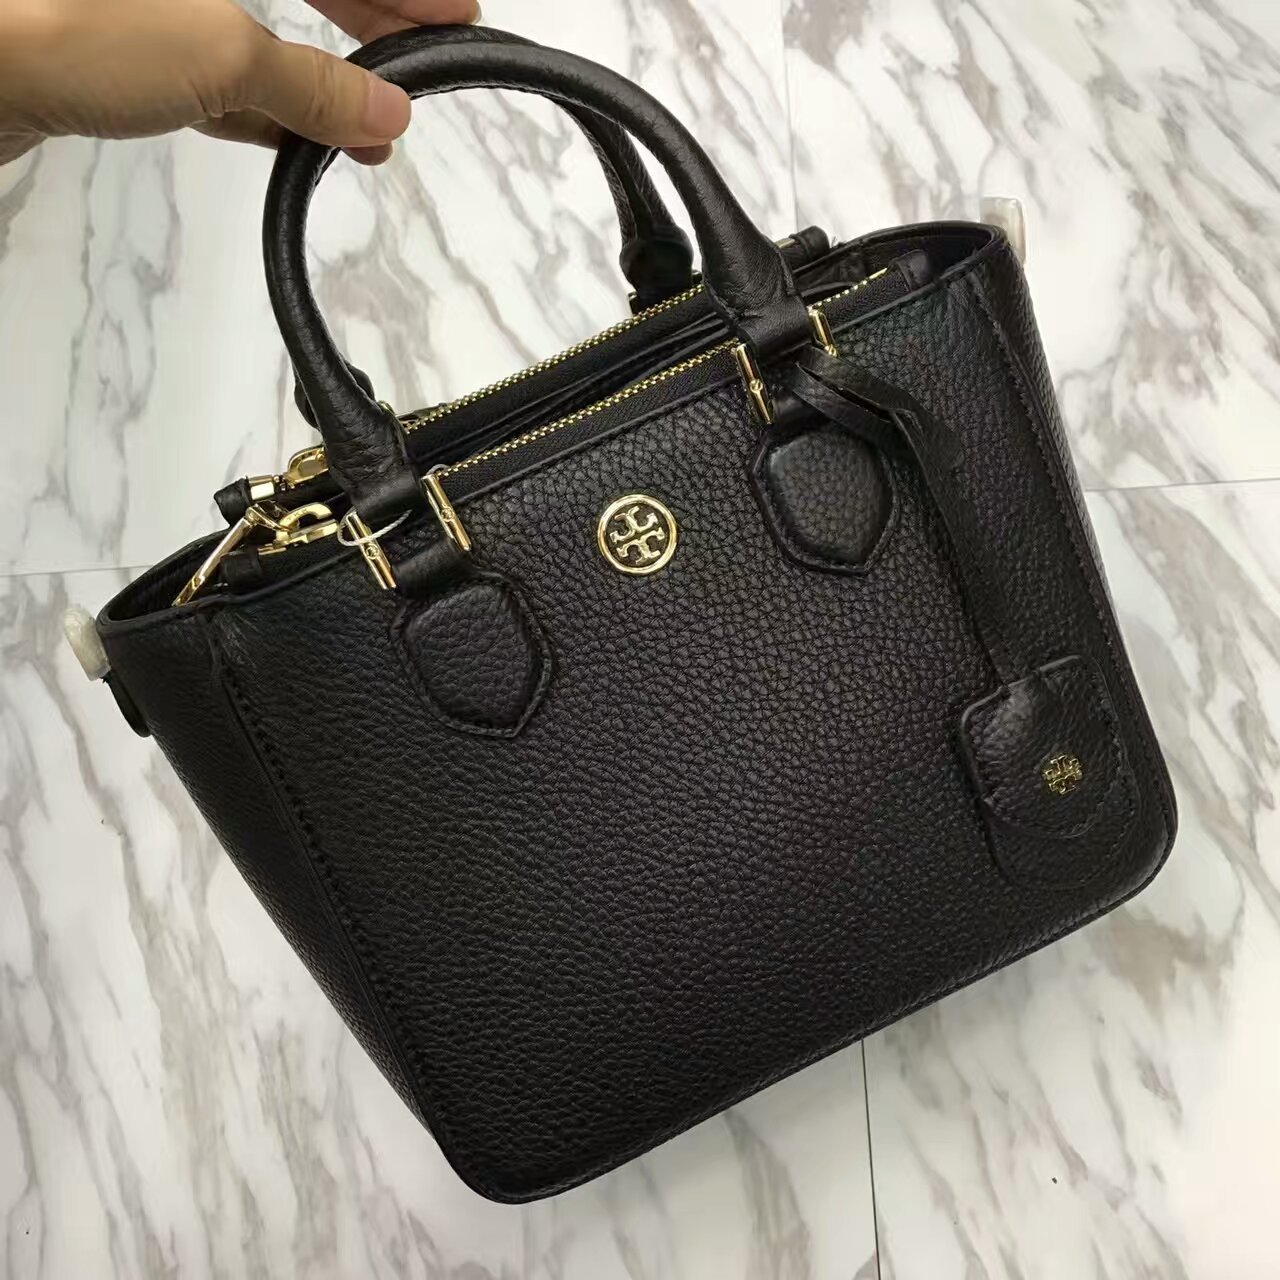 93ca8a431114 Mmexport1490337750666. Mmexport1490337750666. Tory Burch Robinson Pebbled  Mini Square Tote